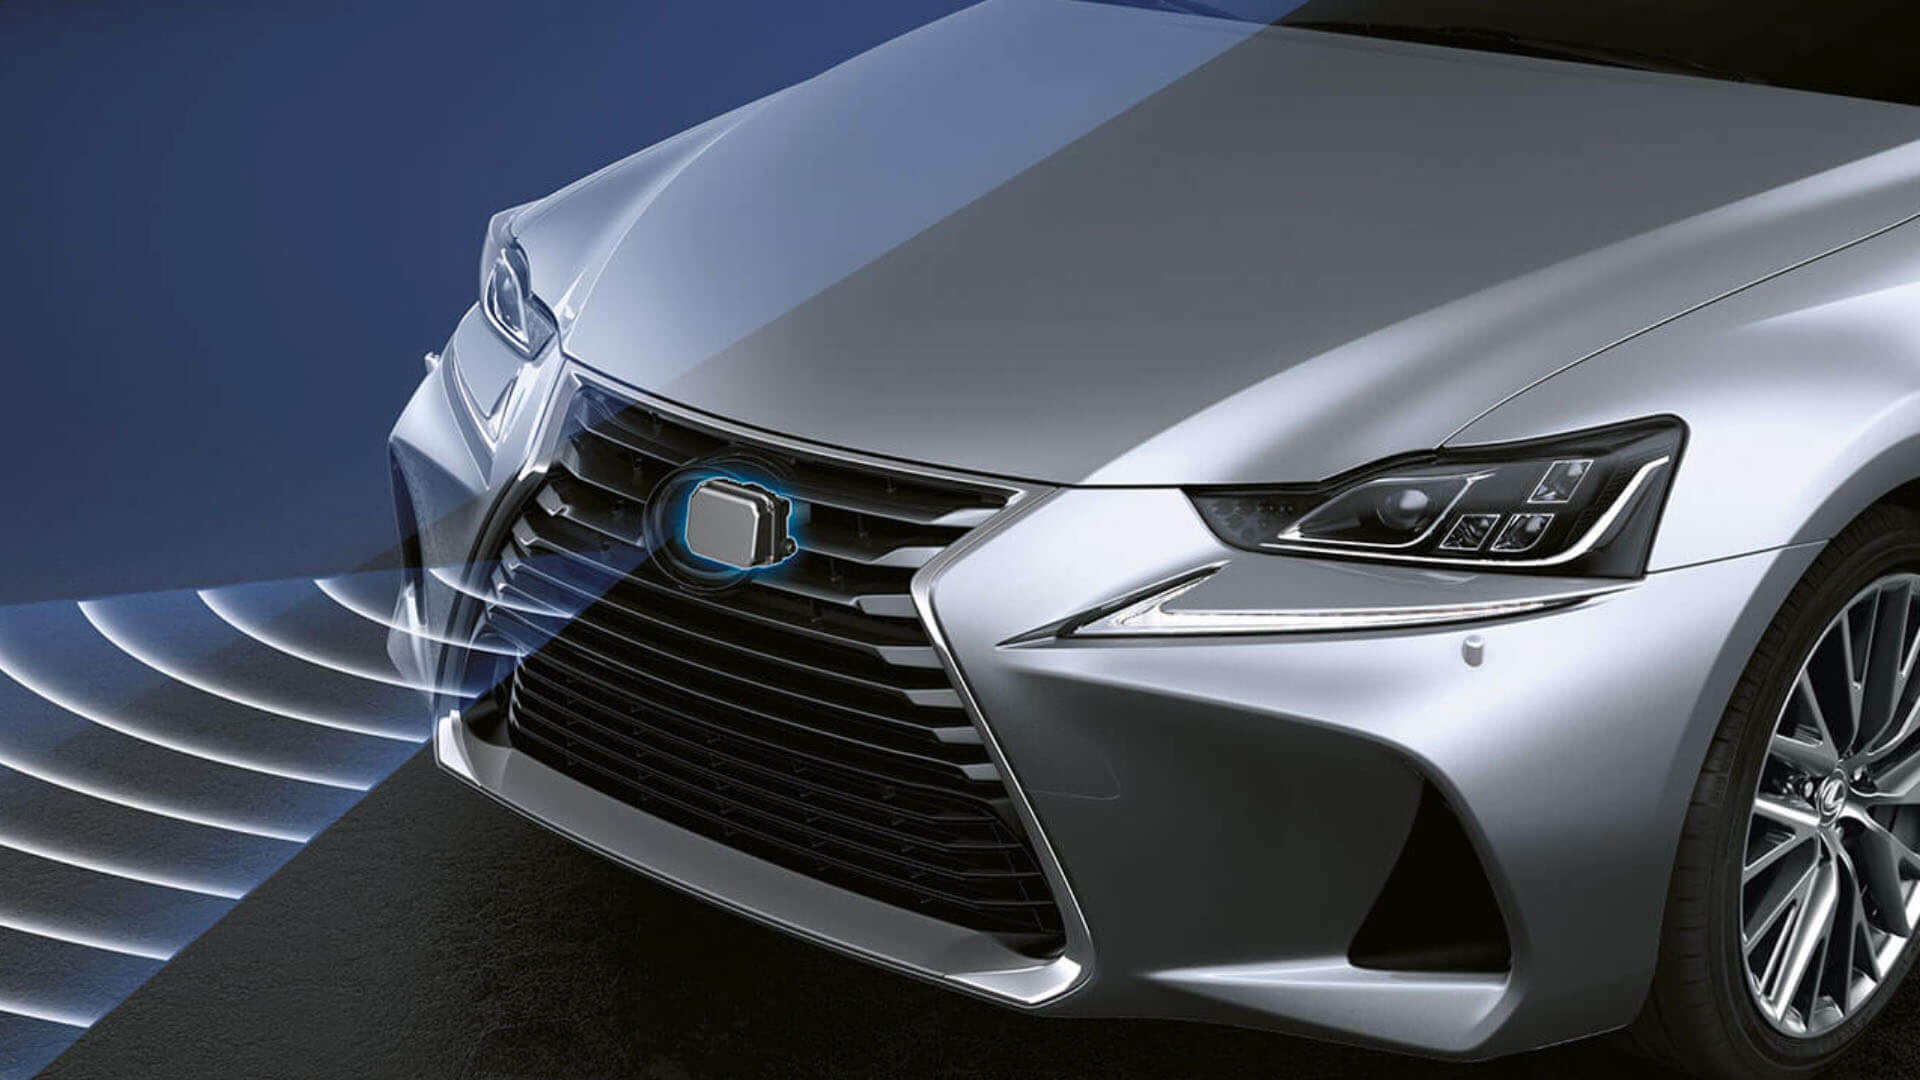 Lexus Safety system in voor bumper